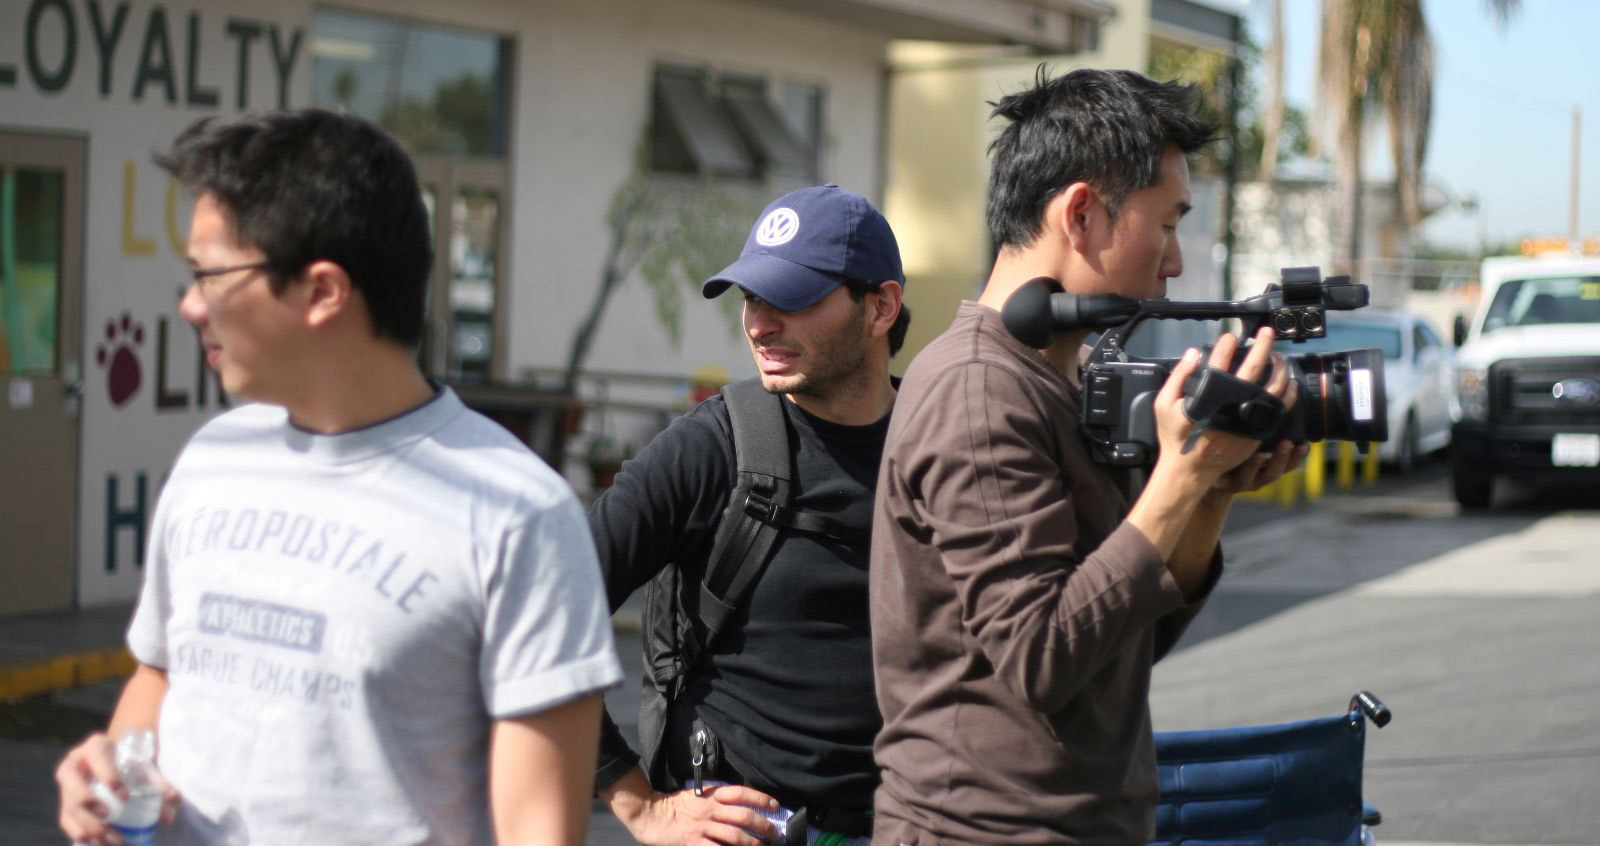 David Aristizabal, center, with crew members while filming A Second Chance